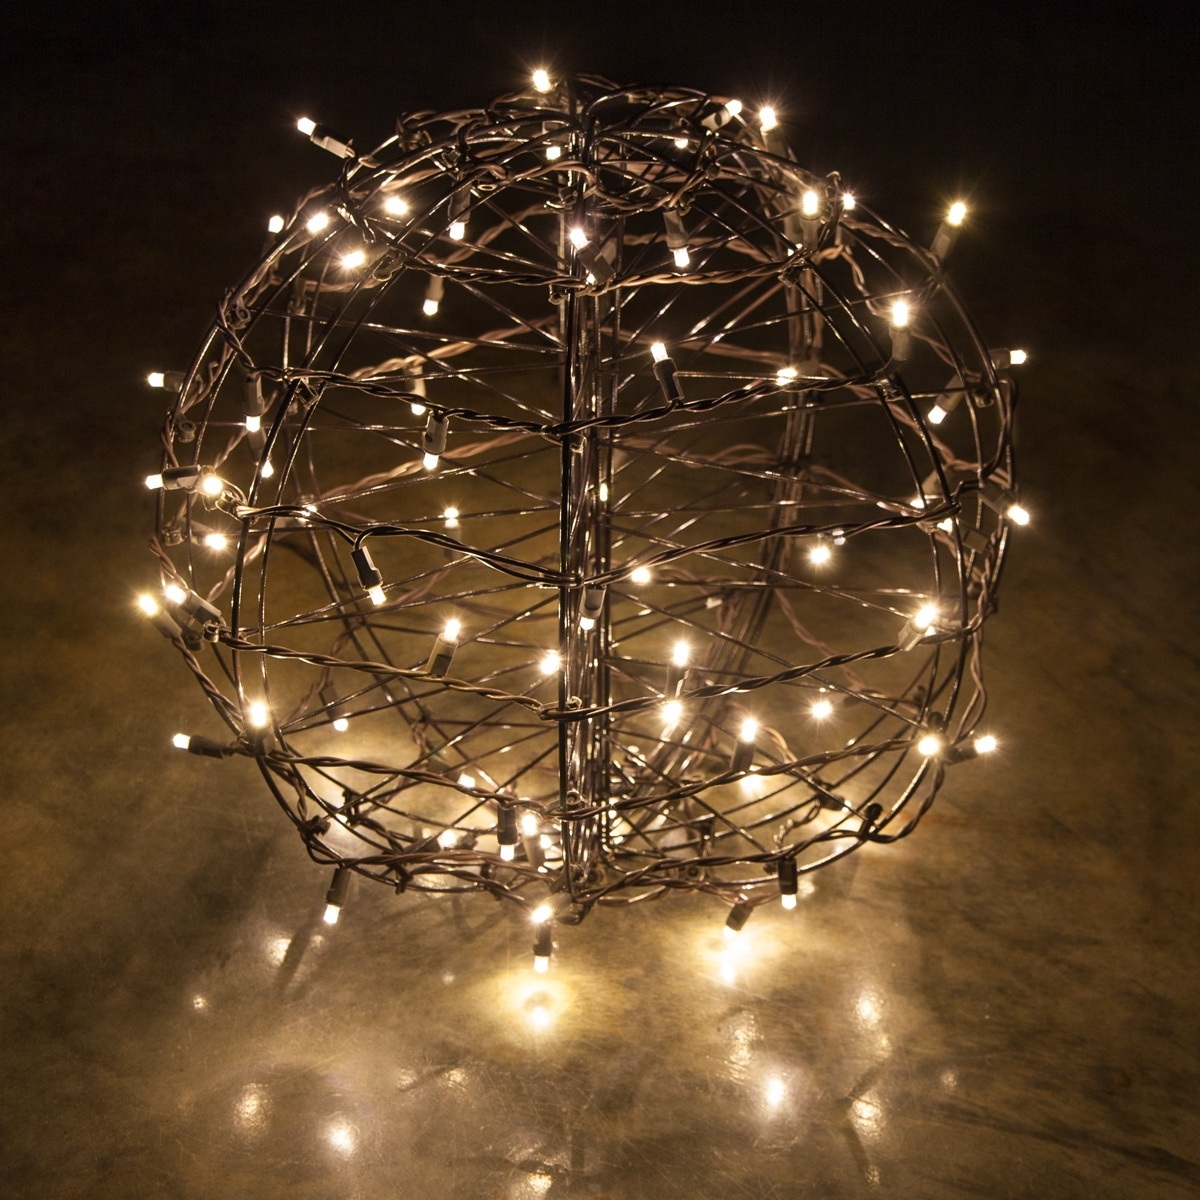 Outdoor Hanging Lights For Trees For Current Wondrous Design Ideas Christmas Ball Lights For Trees Outdoor (View 11 of 20)